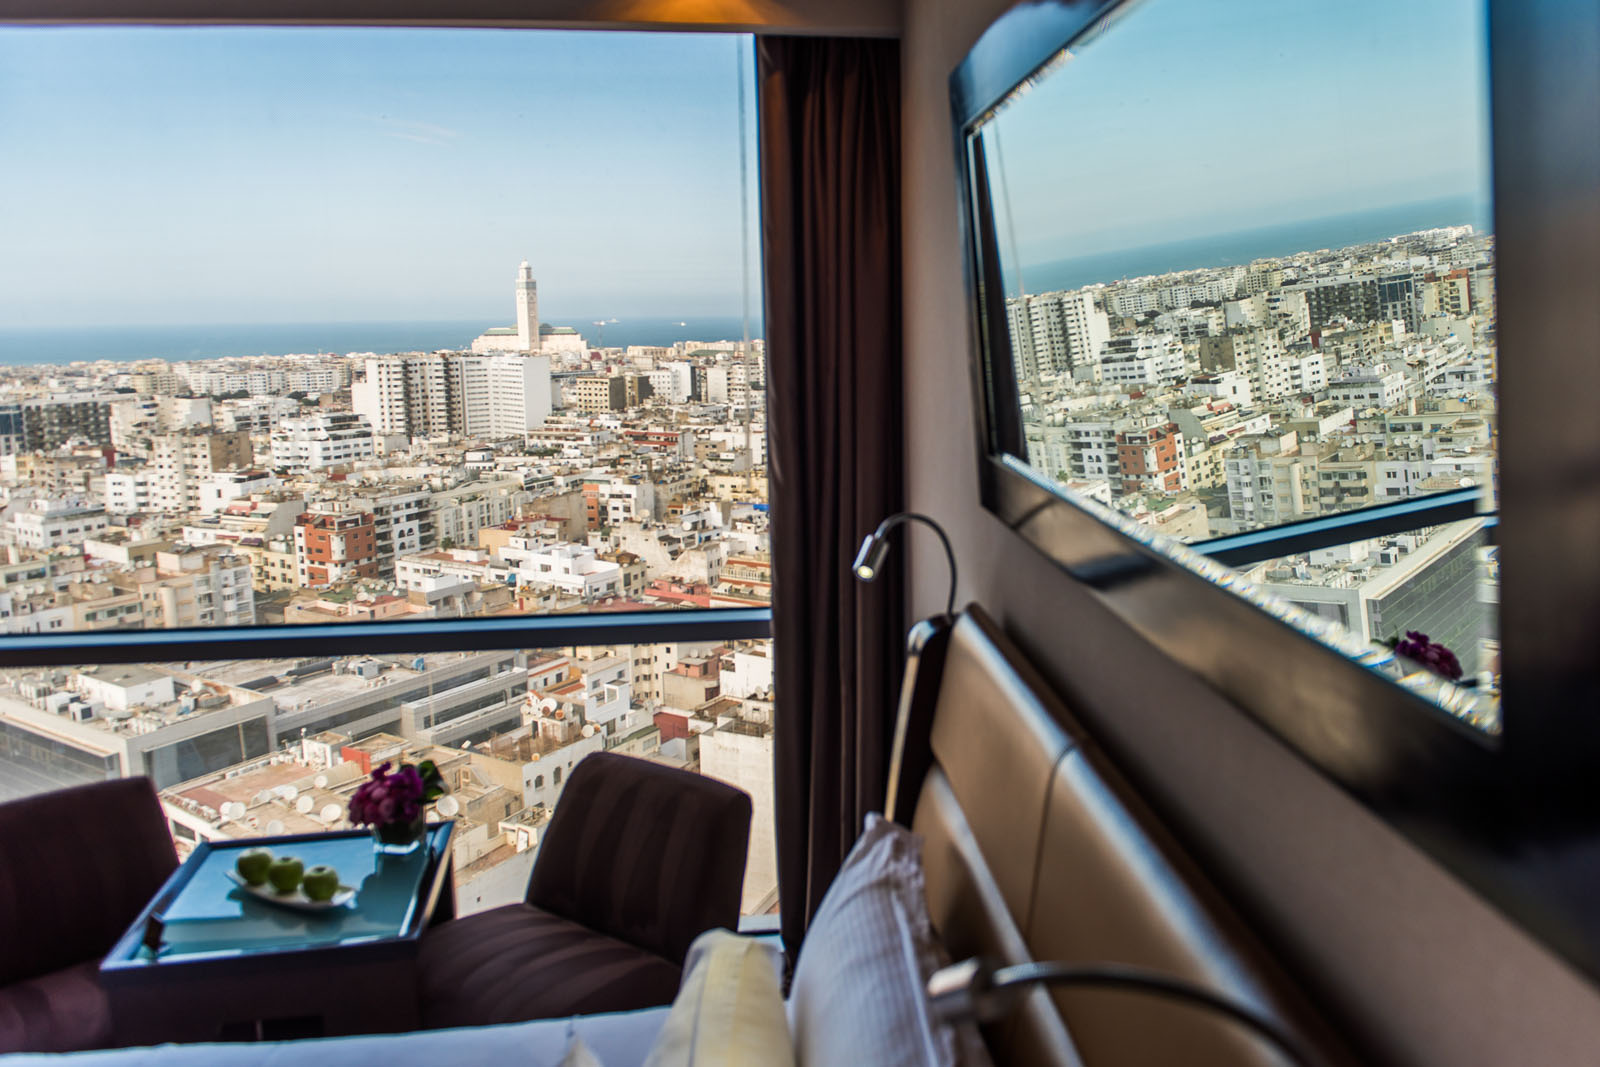 Deluxe Room at Kenzi Tower Hotel in central Casablanca, Morocco